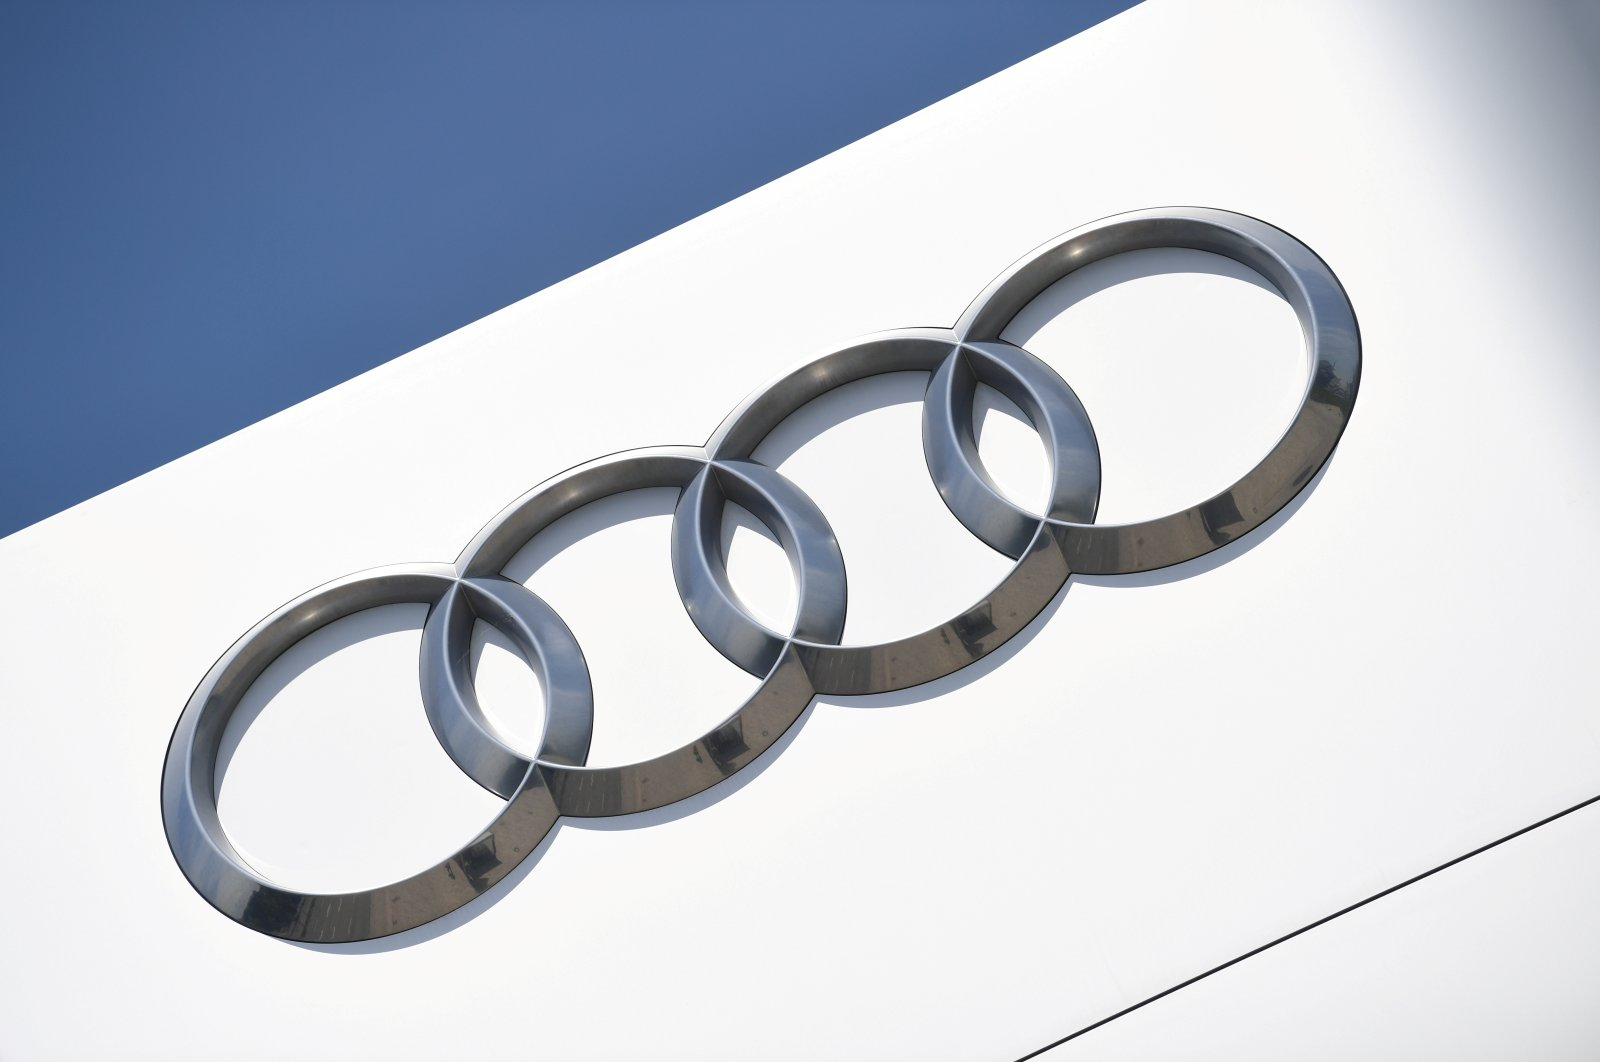 The company logo is seen at the headquarters of the German car manufacturer Audi in Ingolstadt, Germany, June 3, 2020. (Reuters Photo)